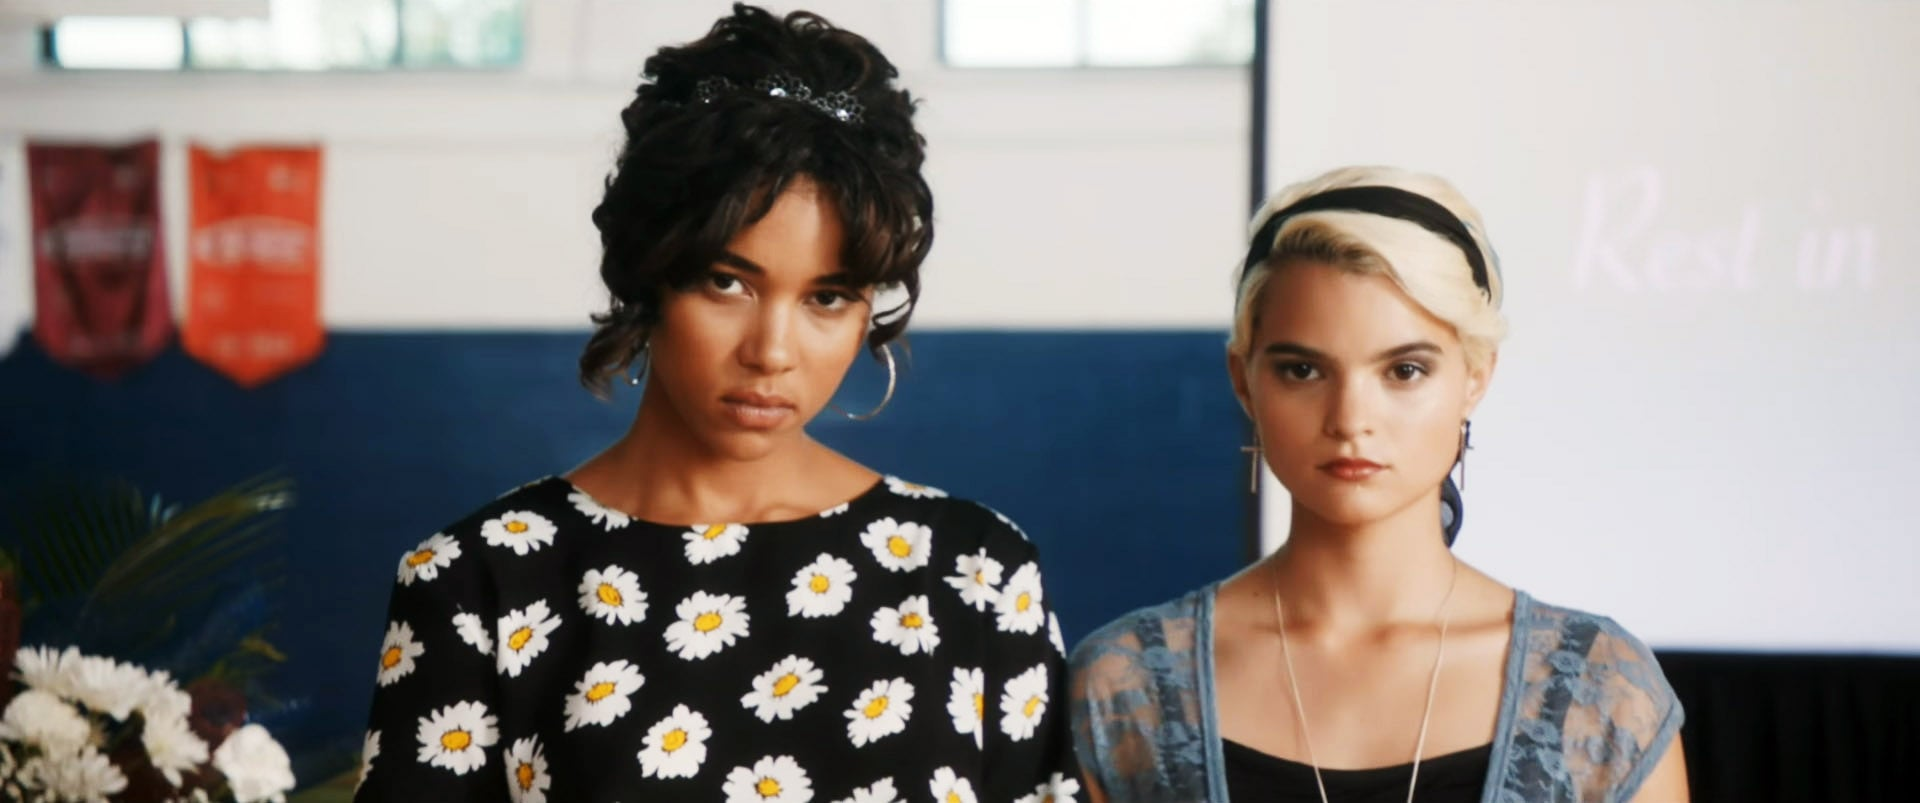 TRAGEDY GIRLS, from left, Alexandra Shipp, Brianna Hildebrand, 2017. Gunpowder & Sky/courtesy Everett Collection